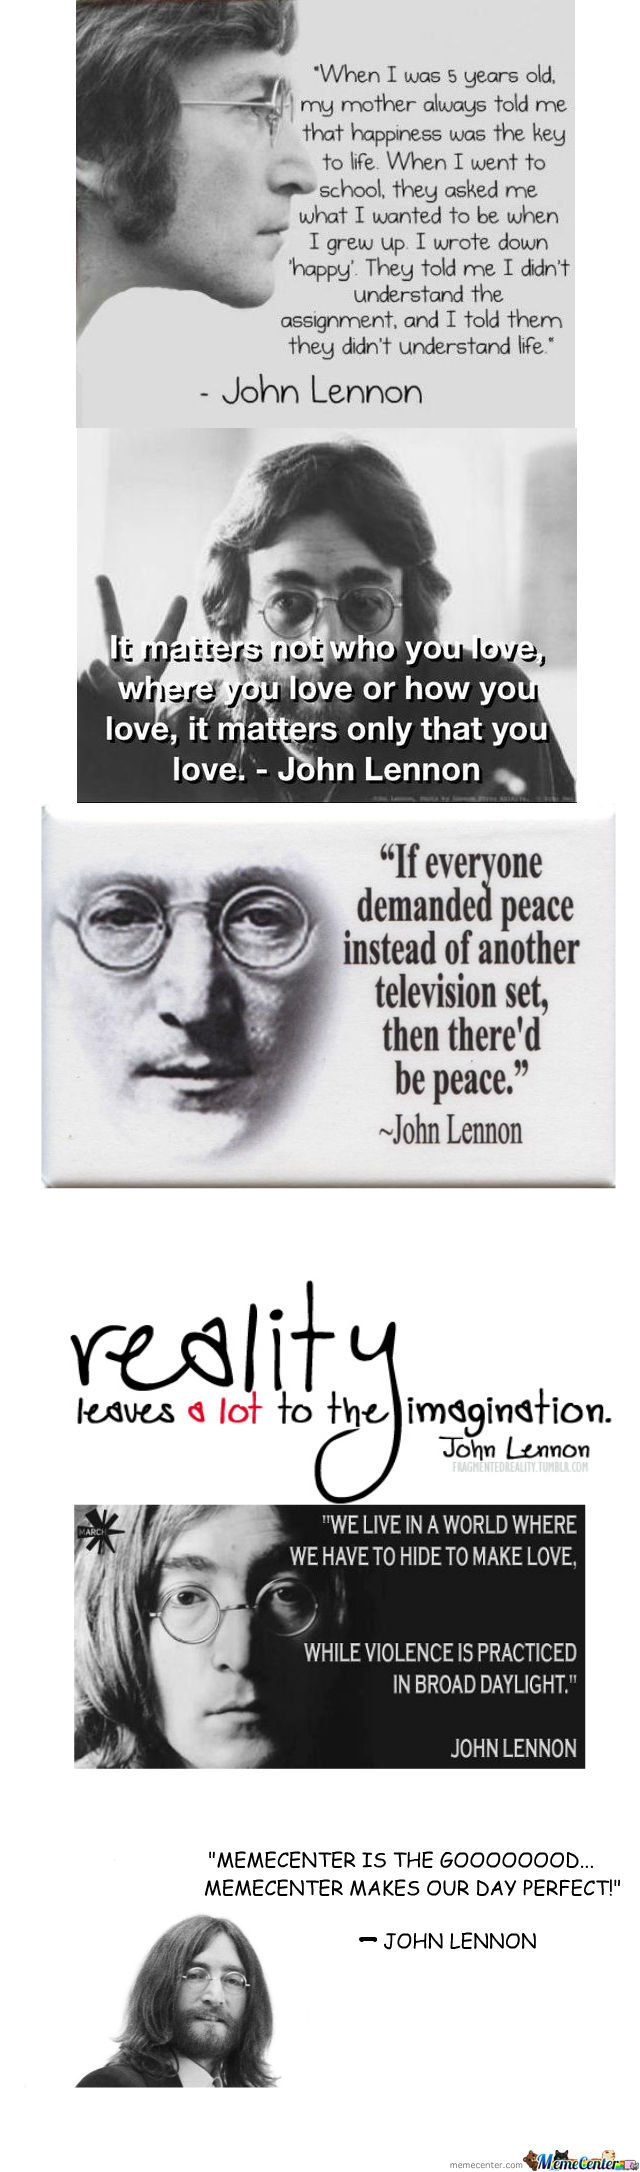 John Lennon Quotes By Rhichardbalusdan